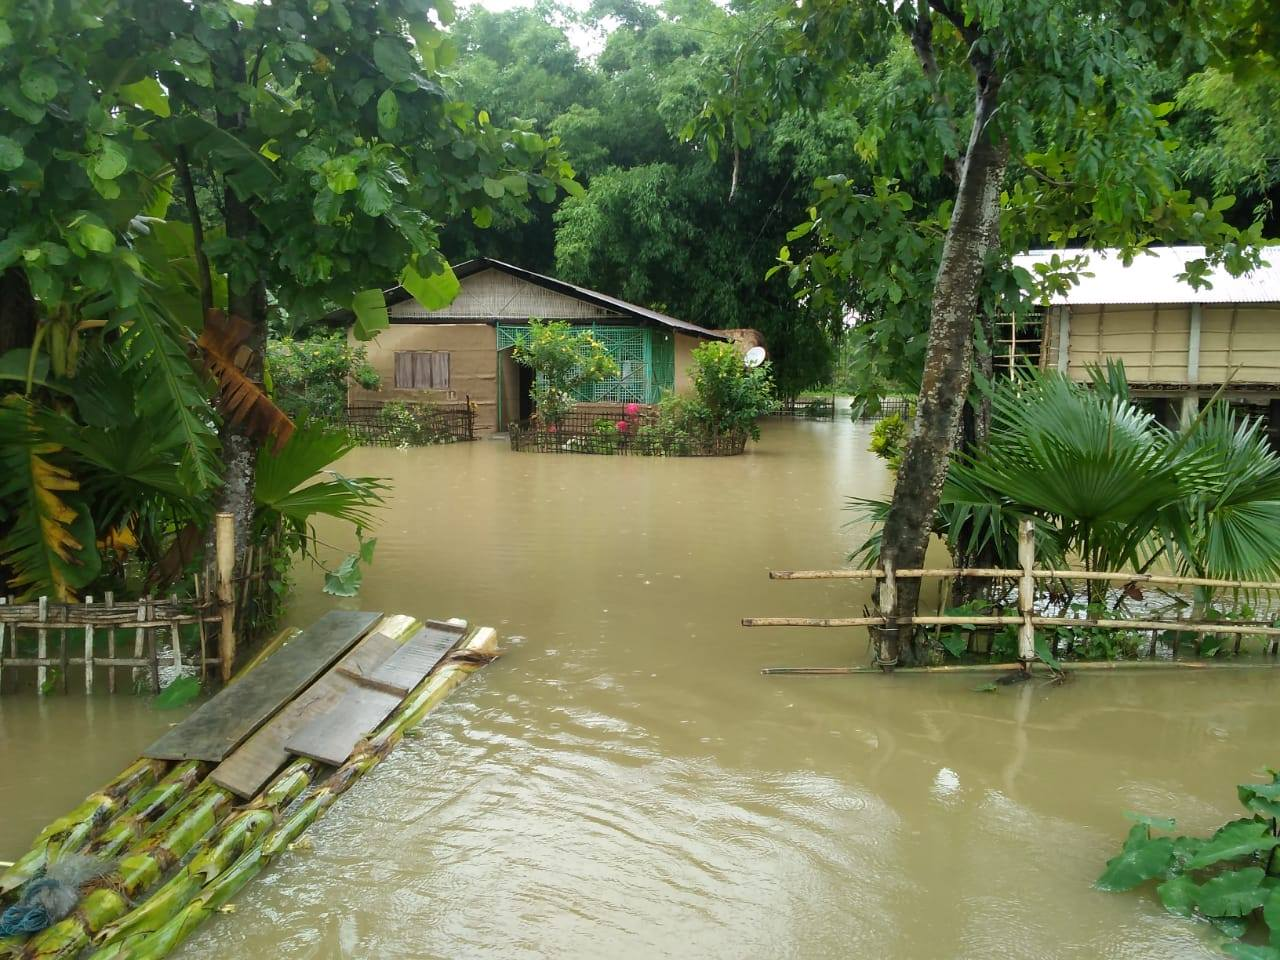 Flooding devastates Assam in Northeastern India